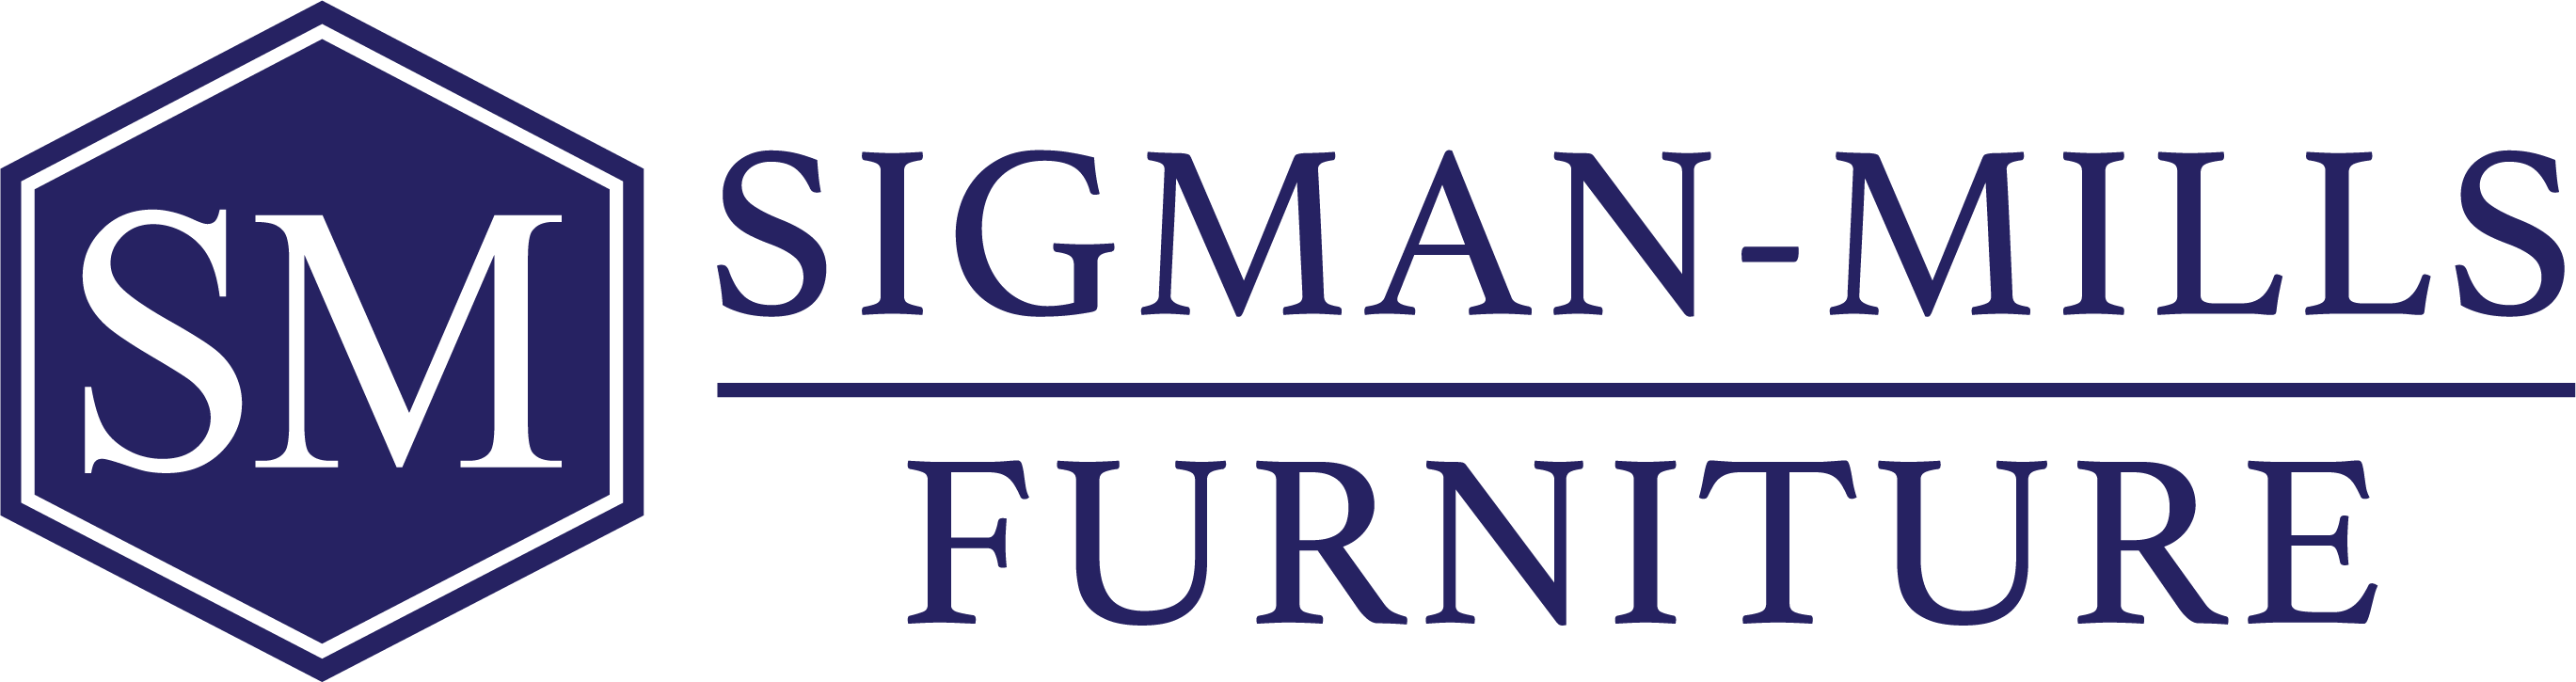 Sigman Mills Furniture